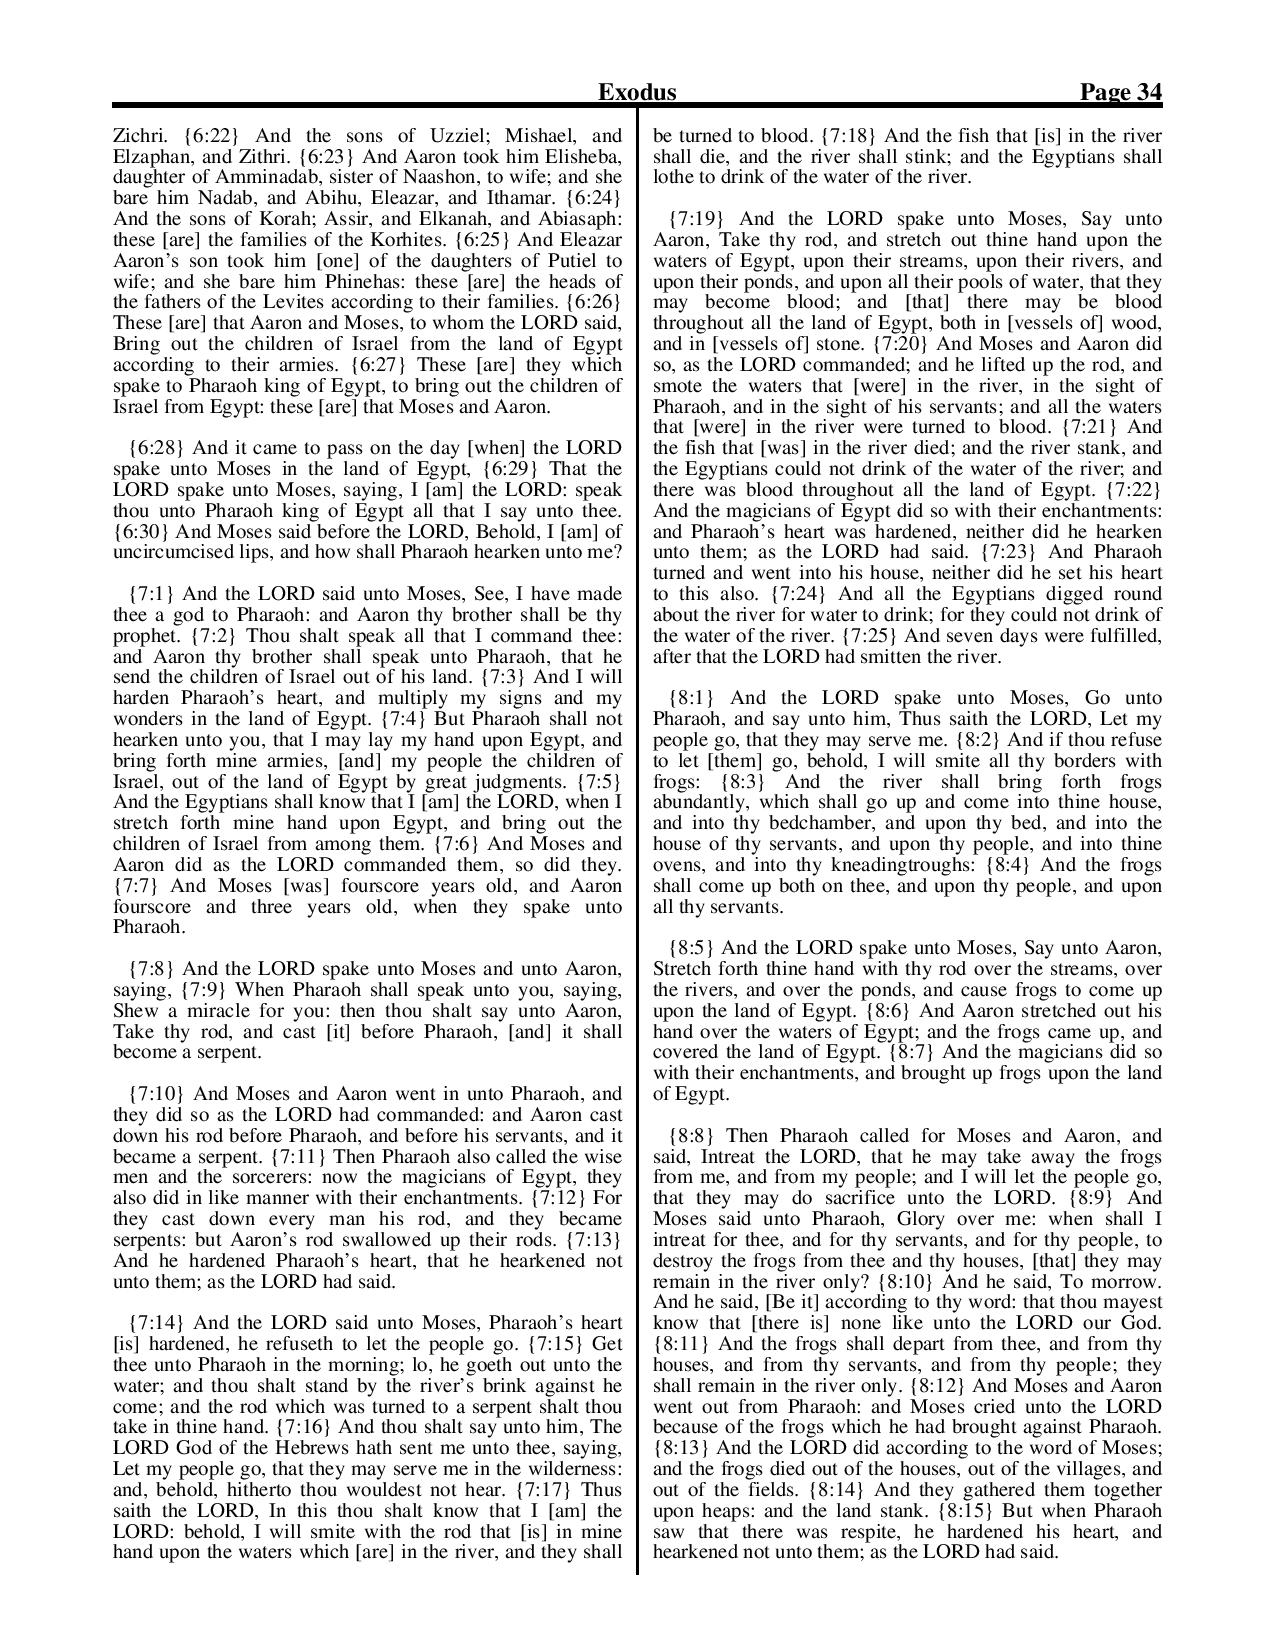 King-James-Bible-KJV-Bible-PDF-page-055